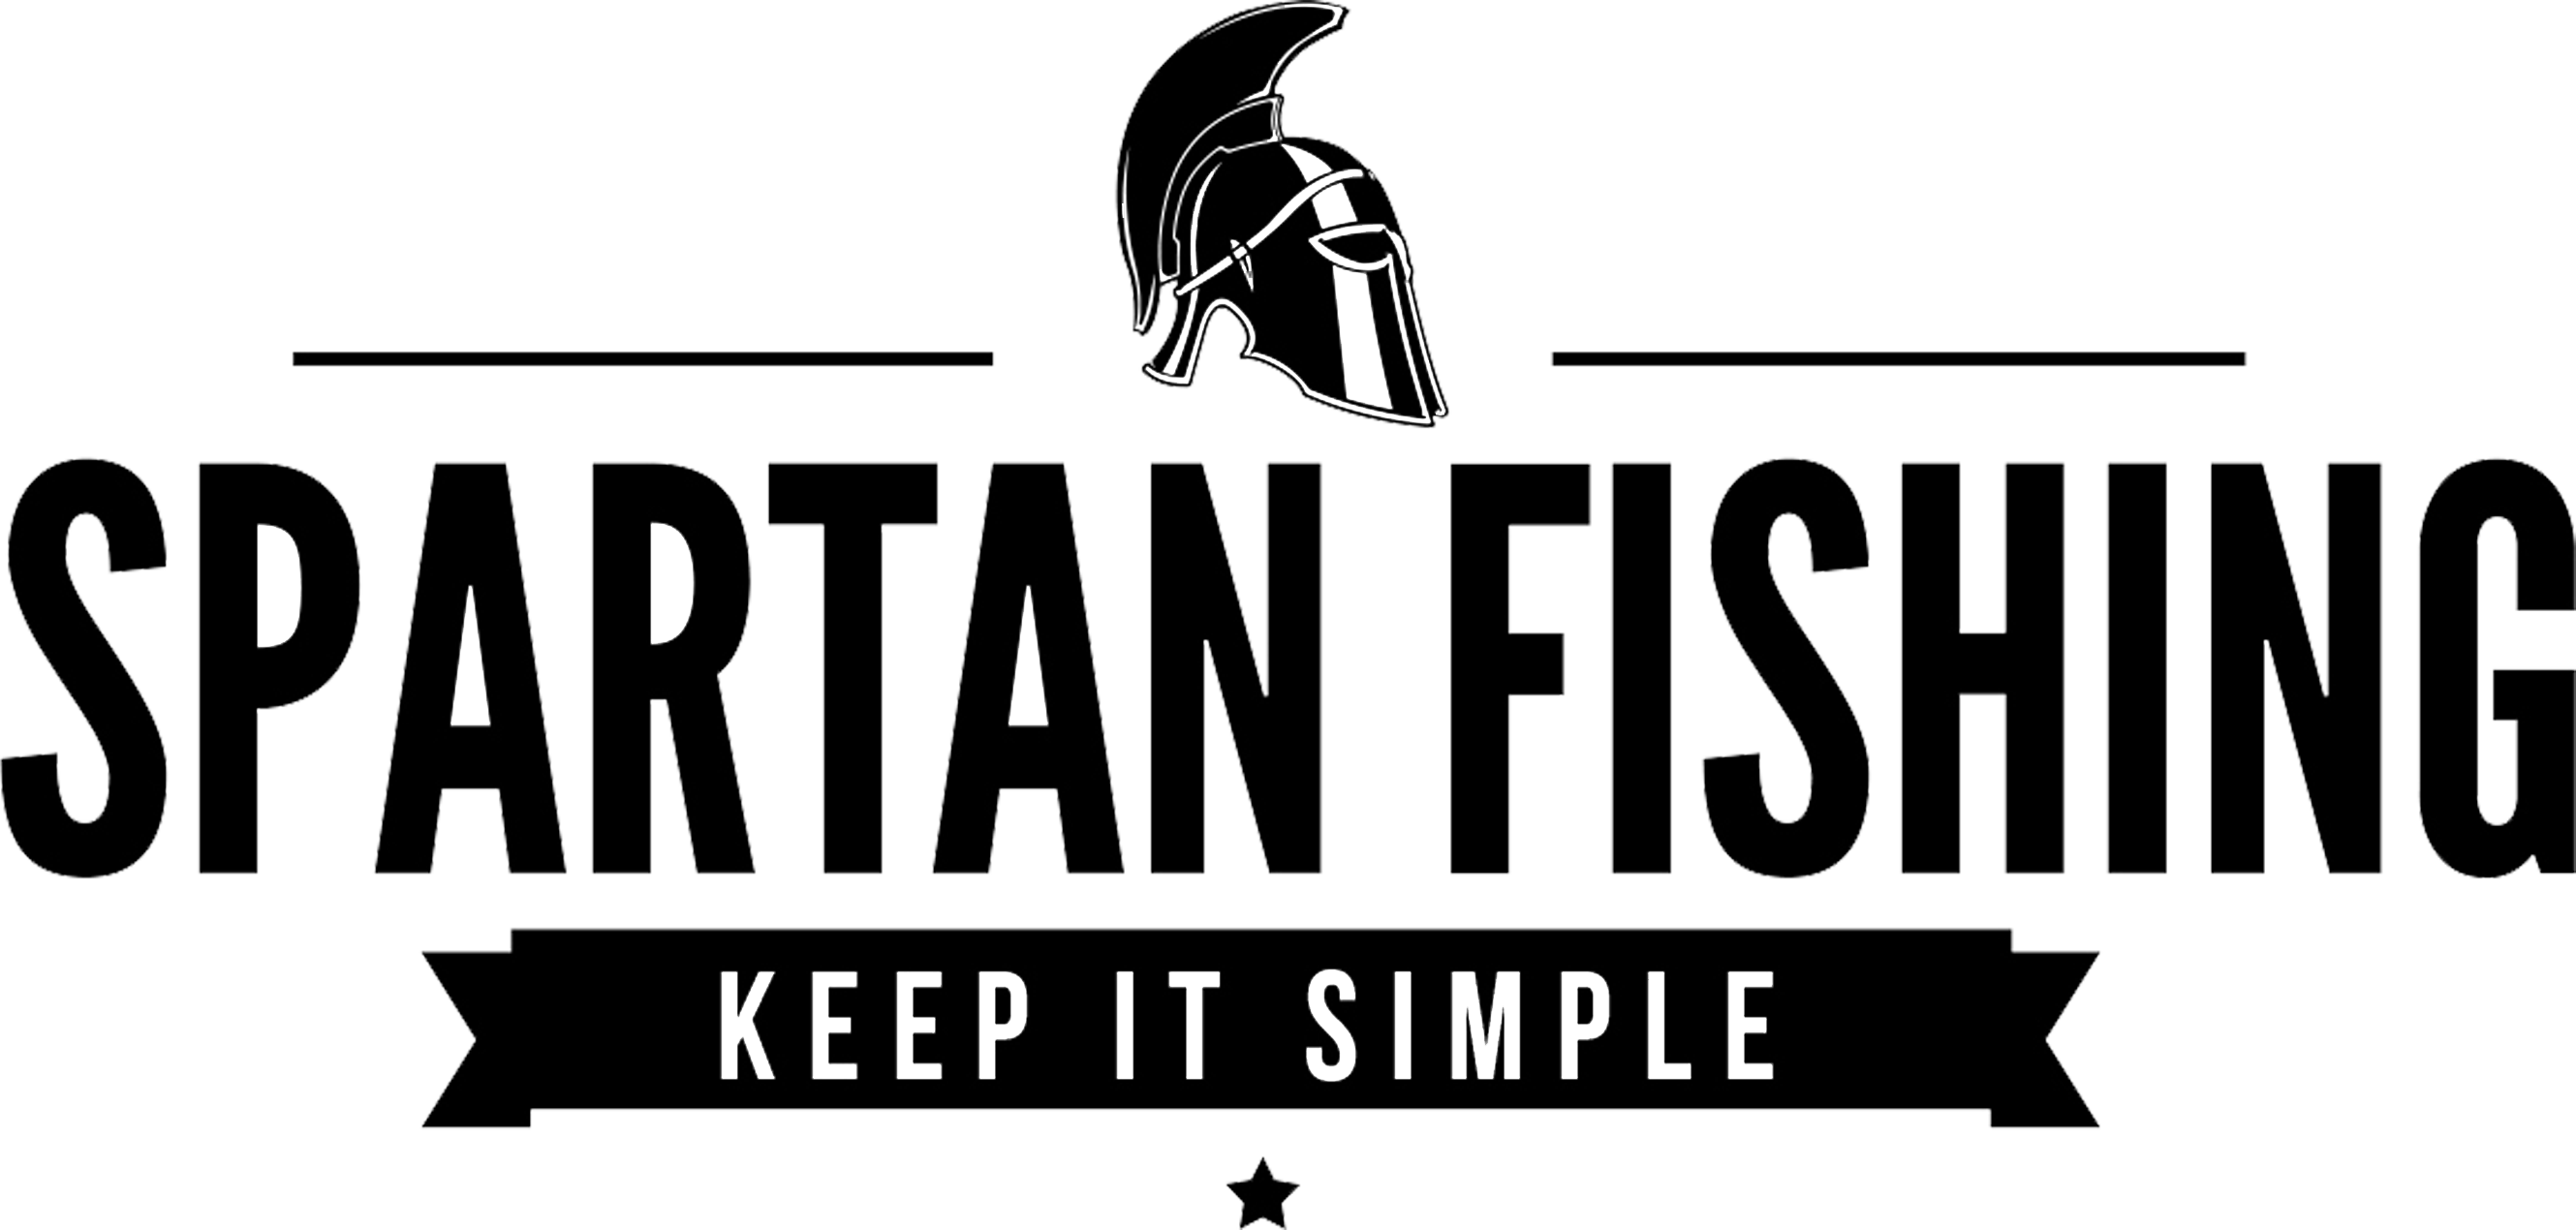 spartan fishing logo